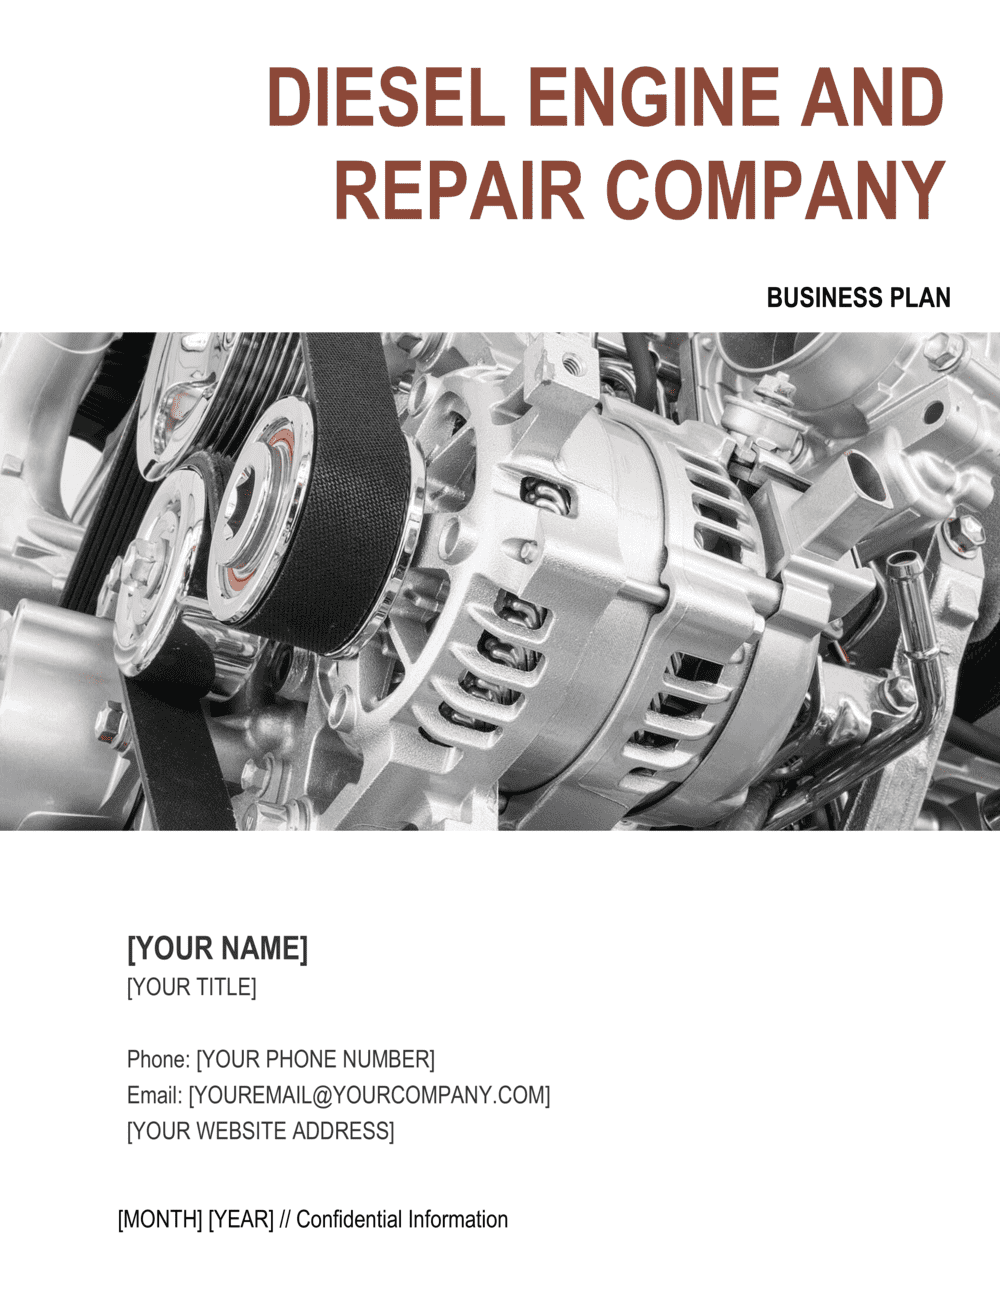 Business-in-a-Box's Diesel Engine and Repair Company Business Plan Template